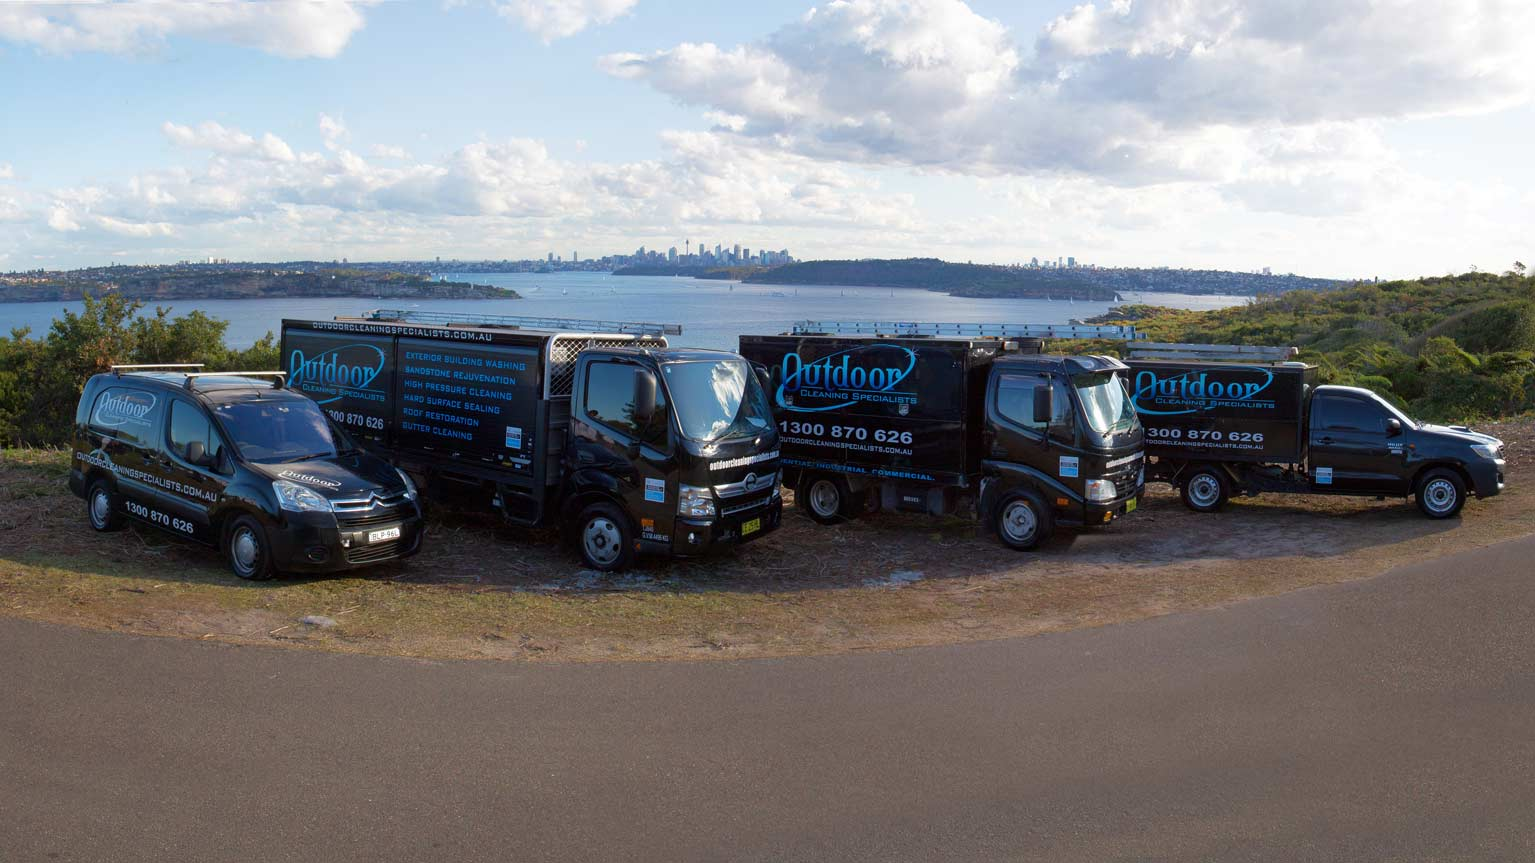 Outdoor Cleaning Specialists Vehicles